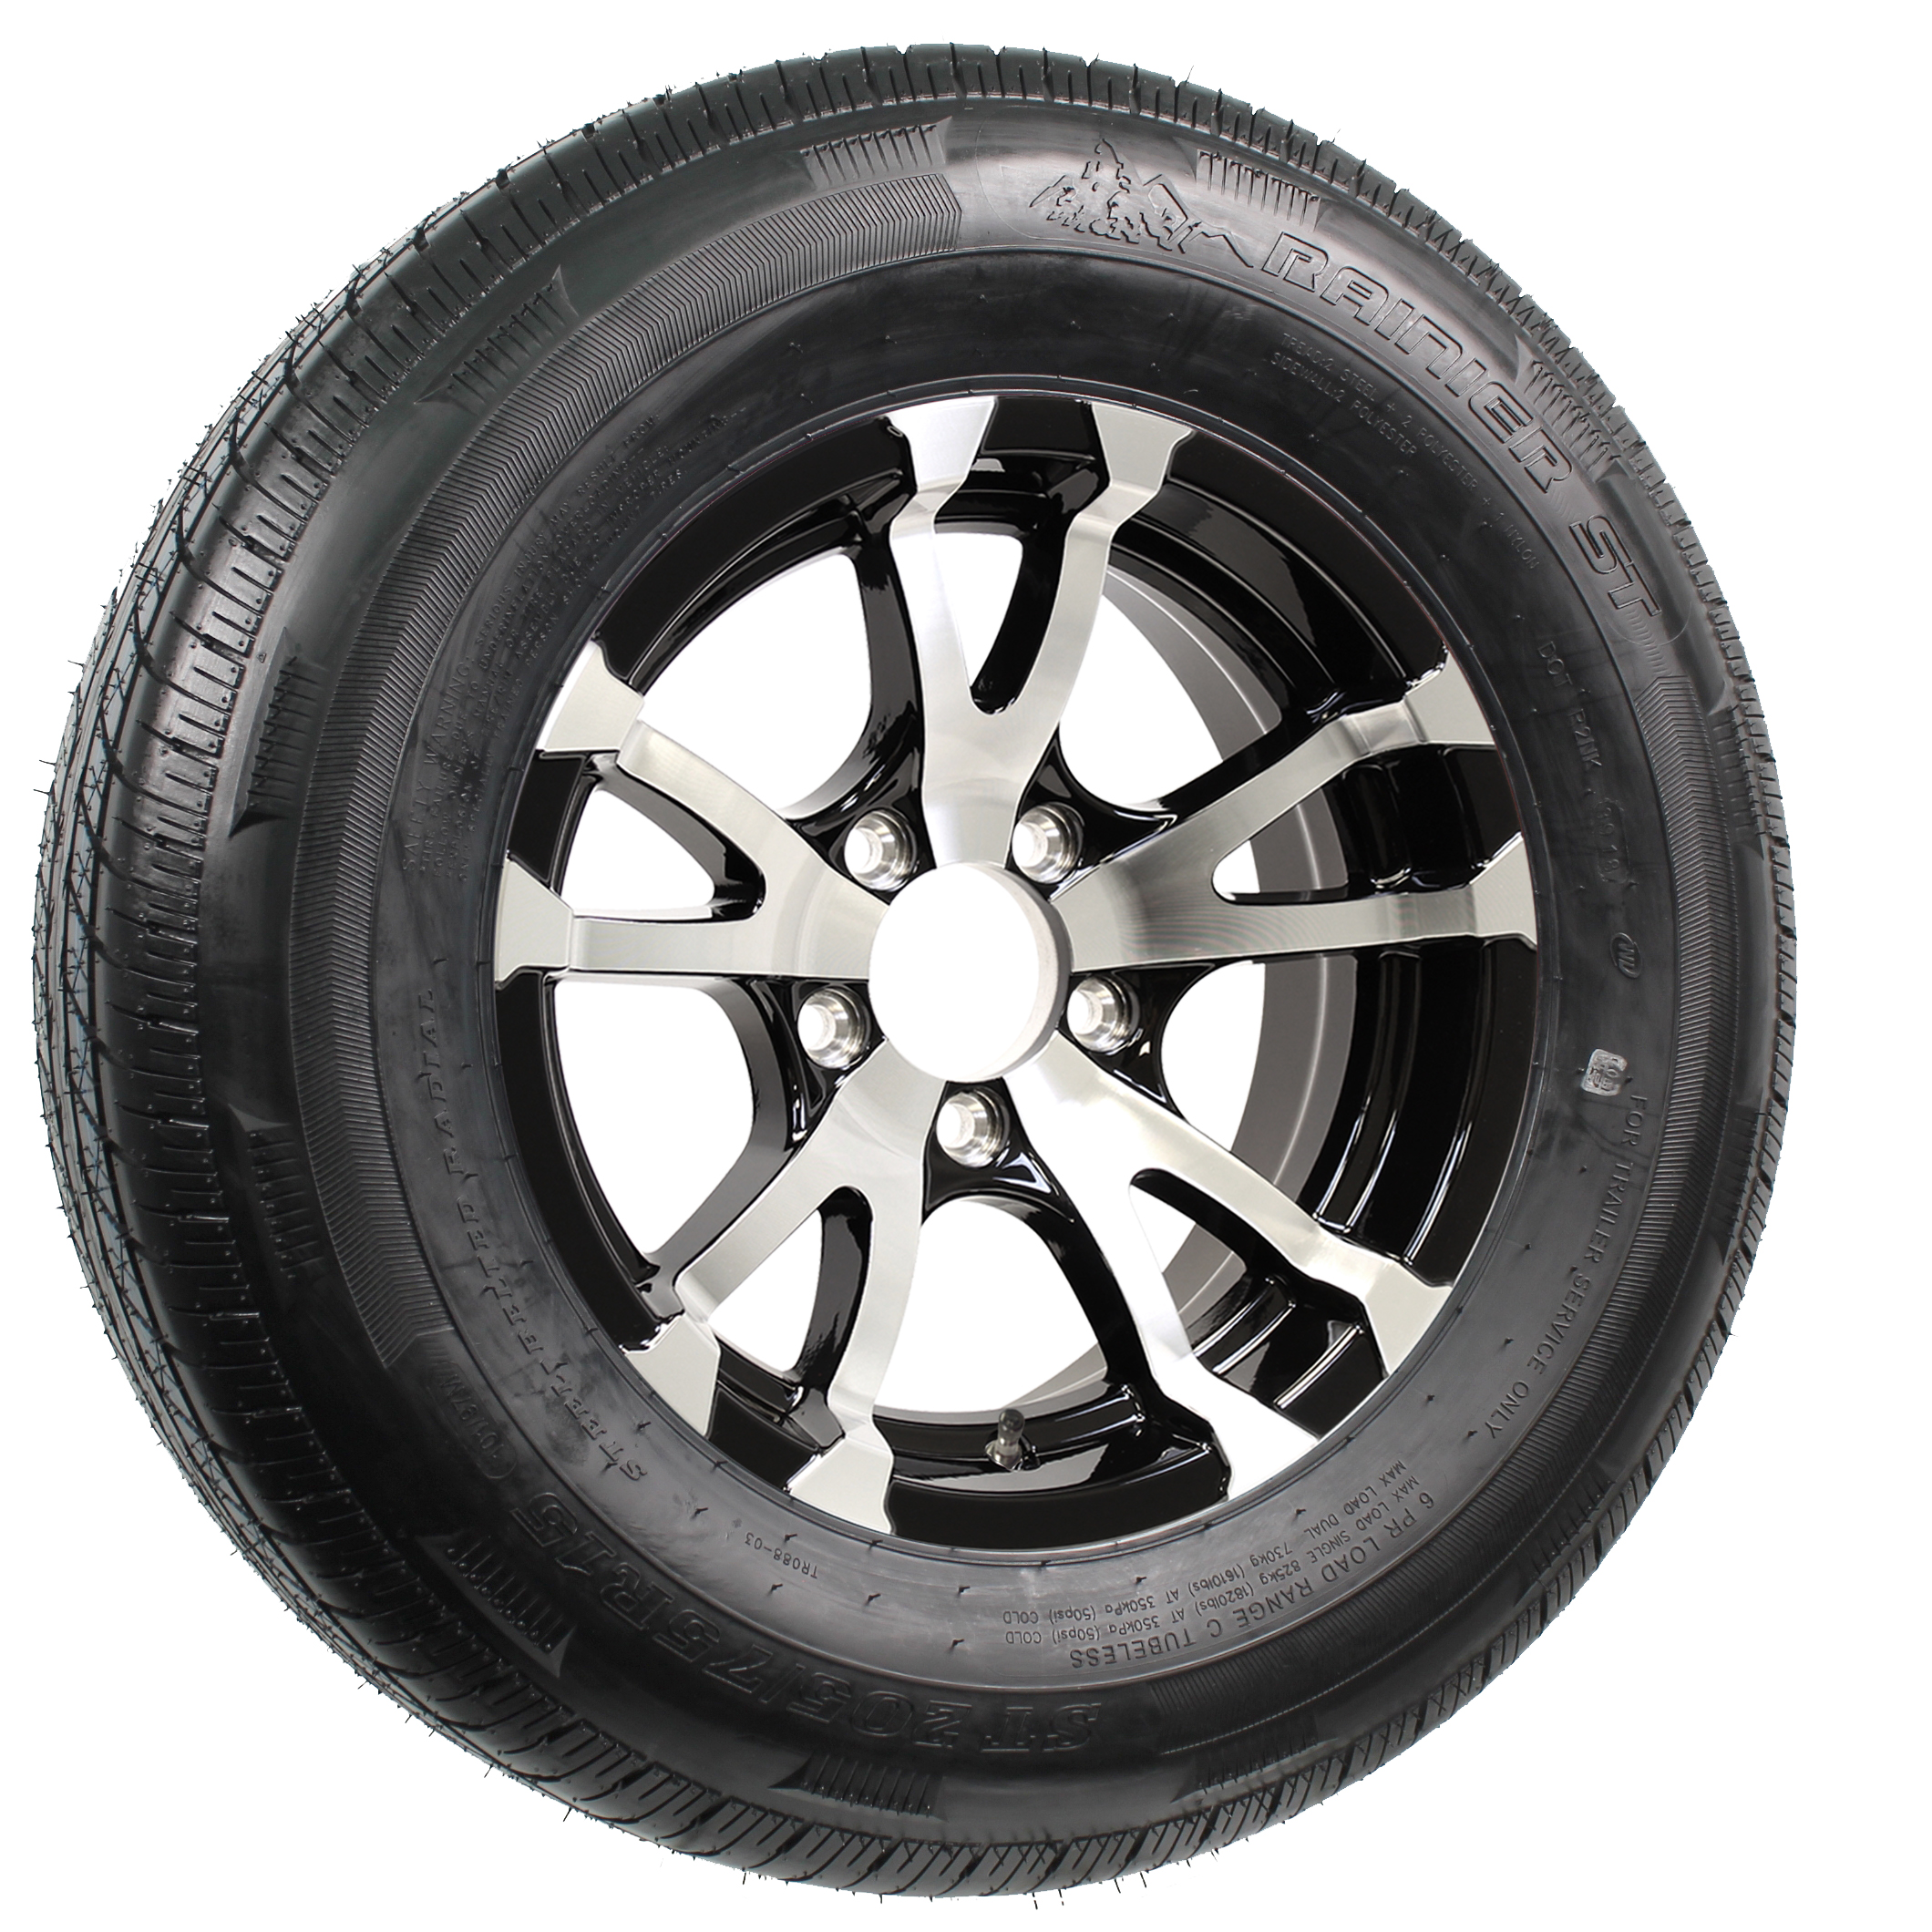 "Rainier ST205/75R15 LRD Radial Tire on 15"" 5-Lug Avalanche Black Aluminum Assembly Image"